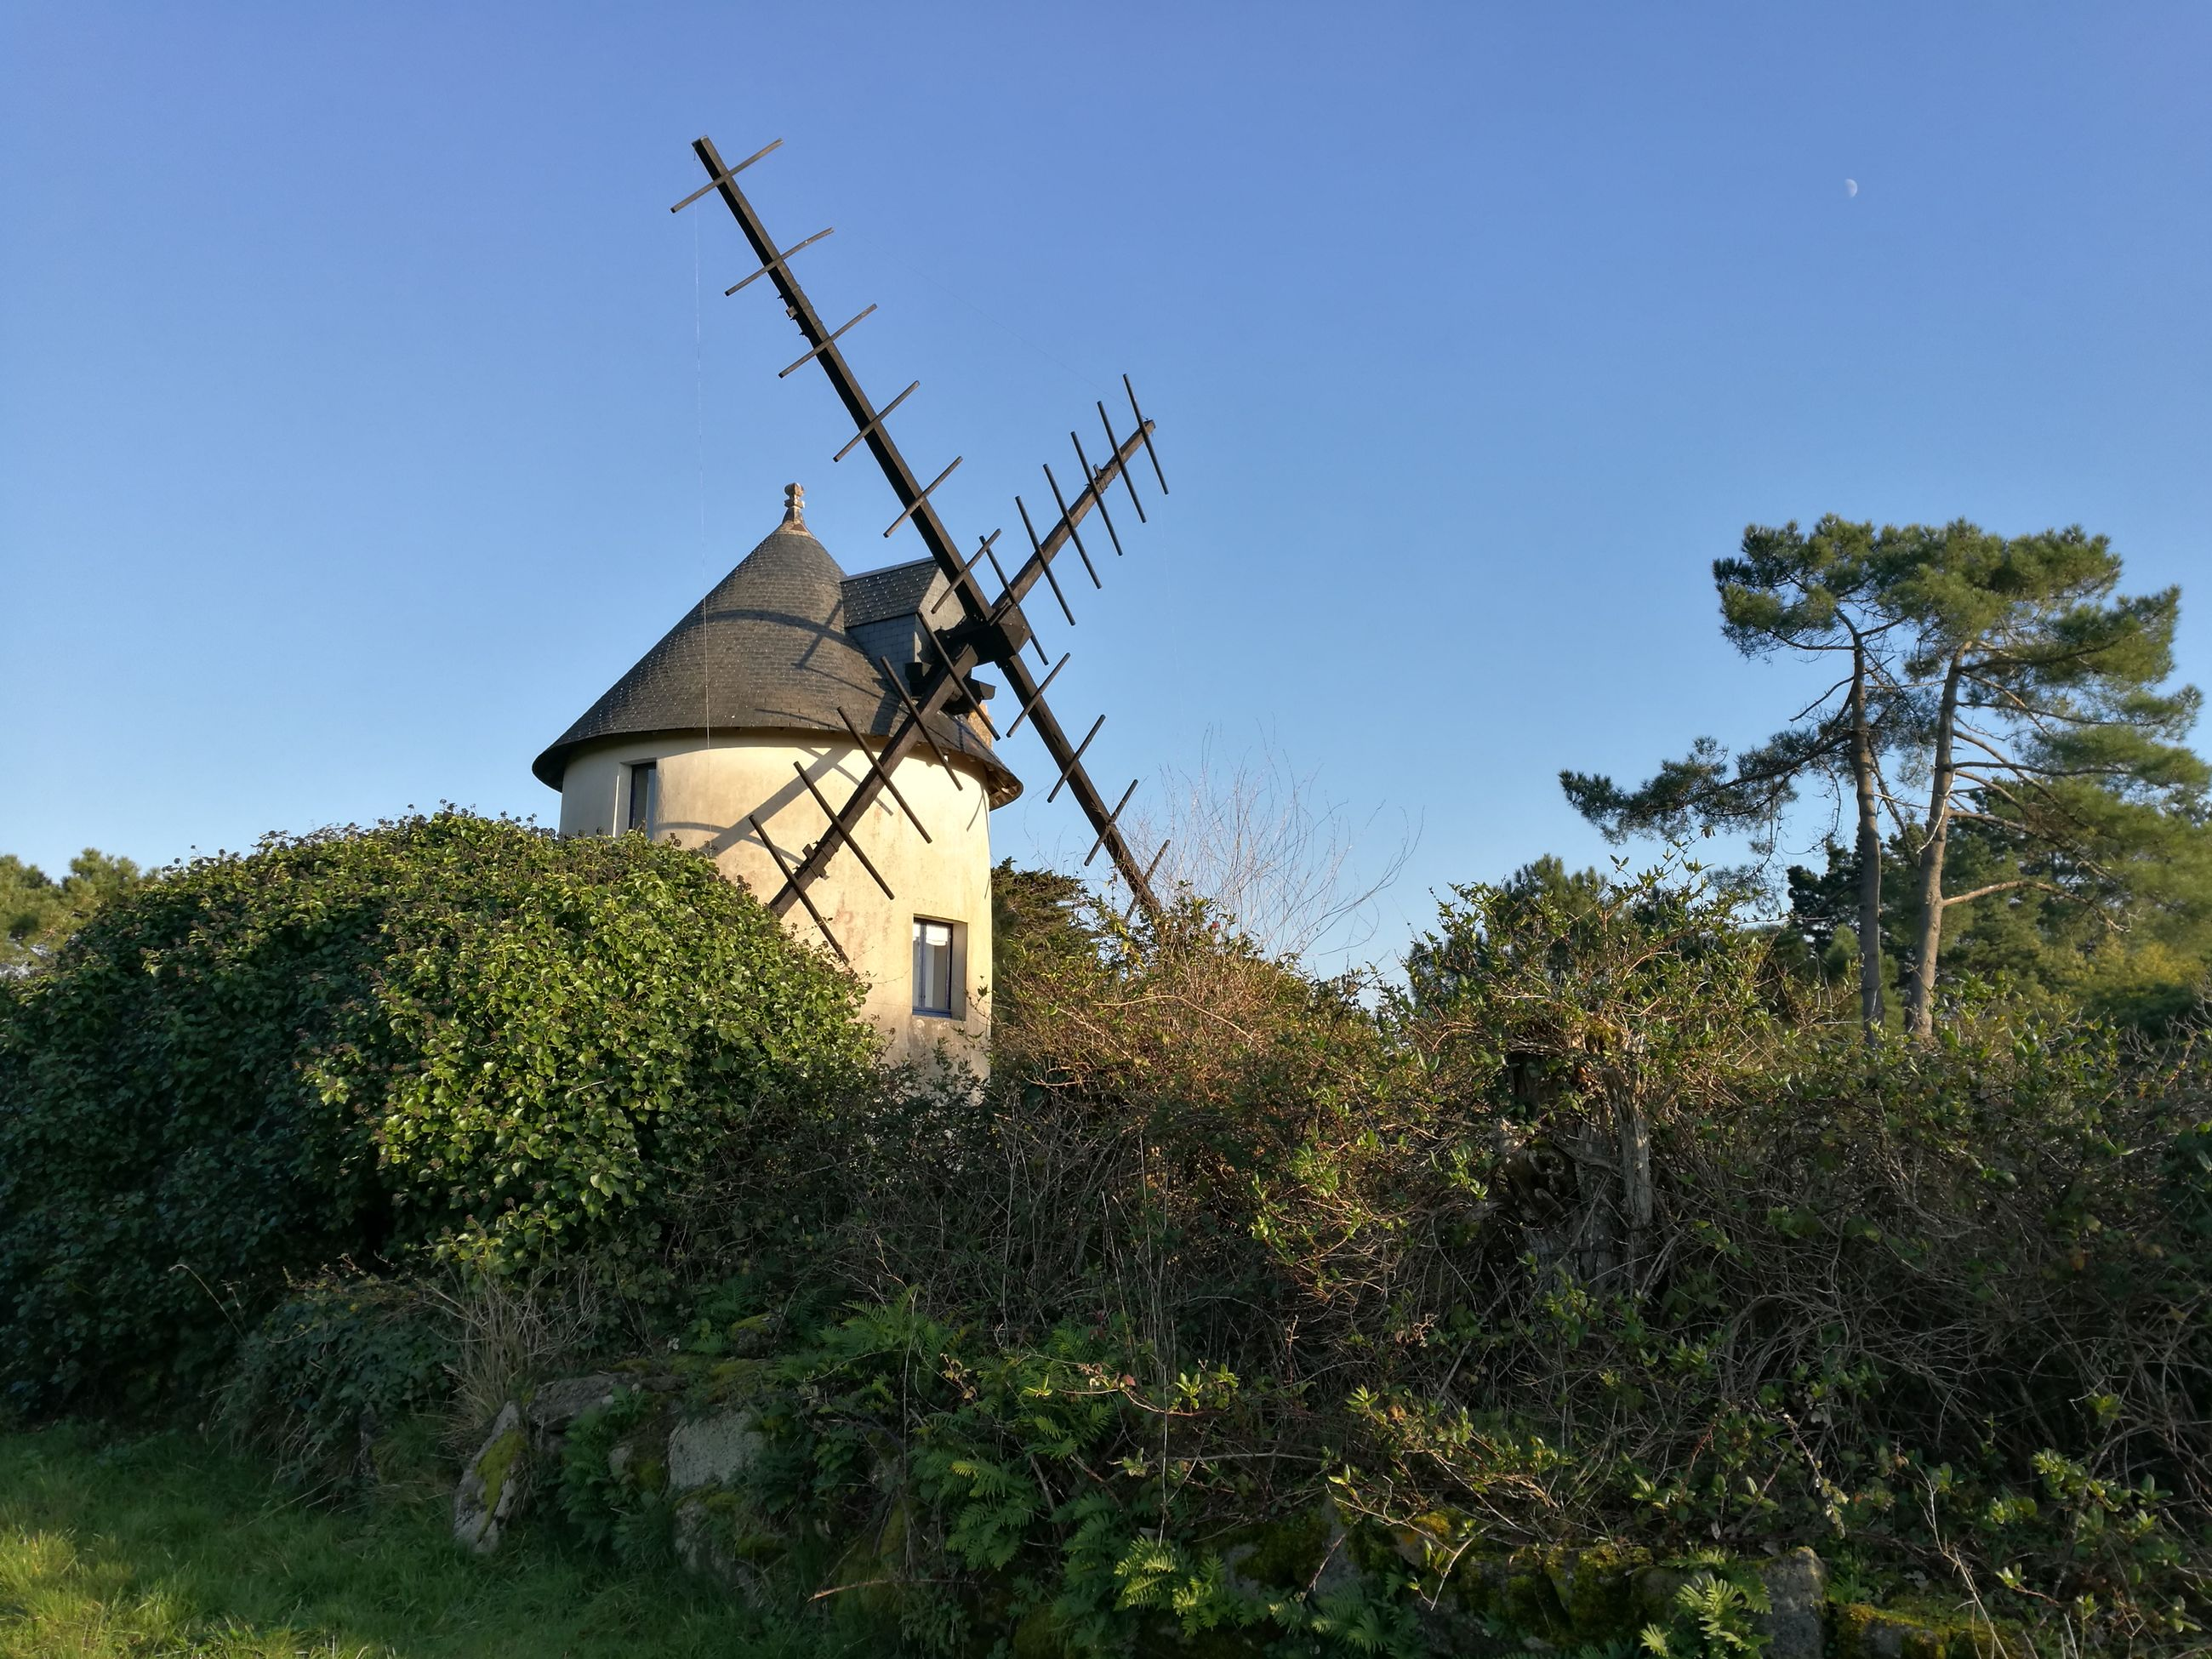 windmill, alternative energy, environmental conservation, wind power, built structure, fuel and power generation, renewable energy, clear sky, tree, traditional windmill, wind turbine, low angle view, architecture, building exterior, rural scene, no people, nature, house, outdoors, water wheel, day, sky